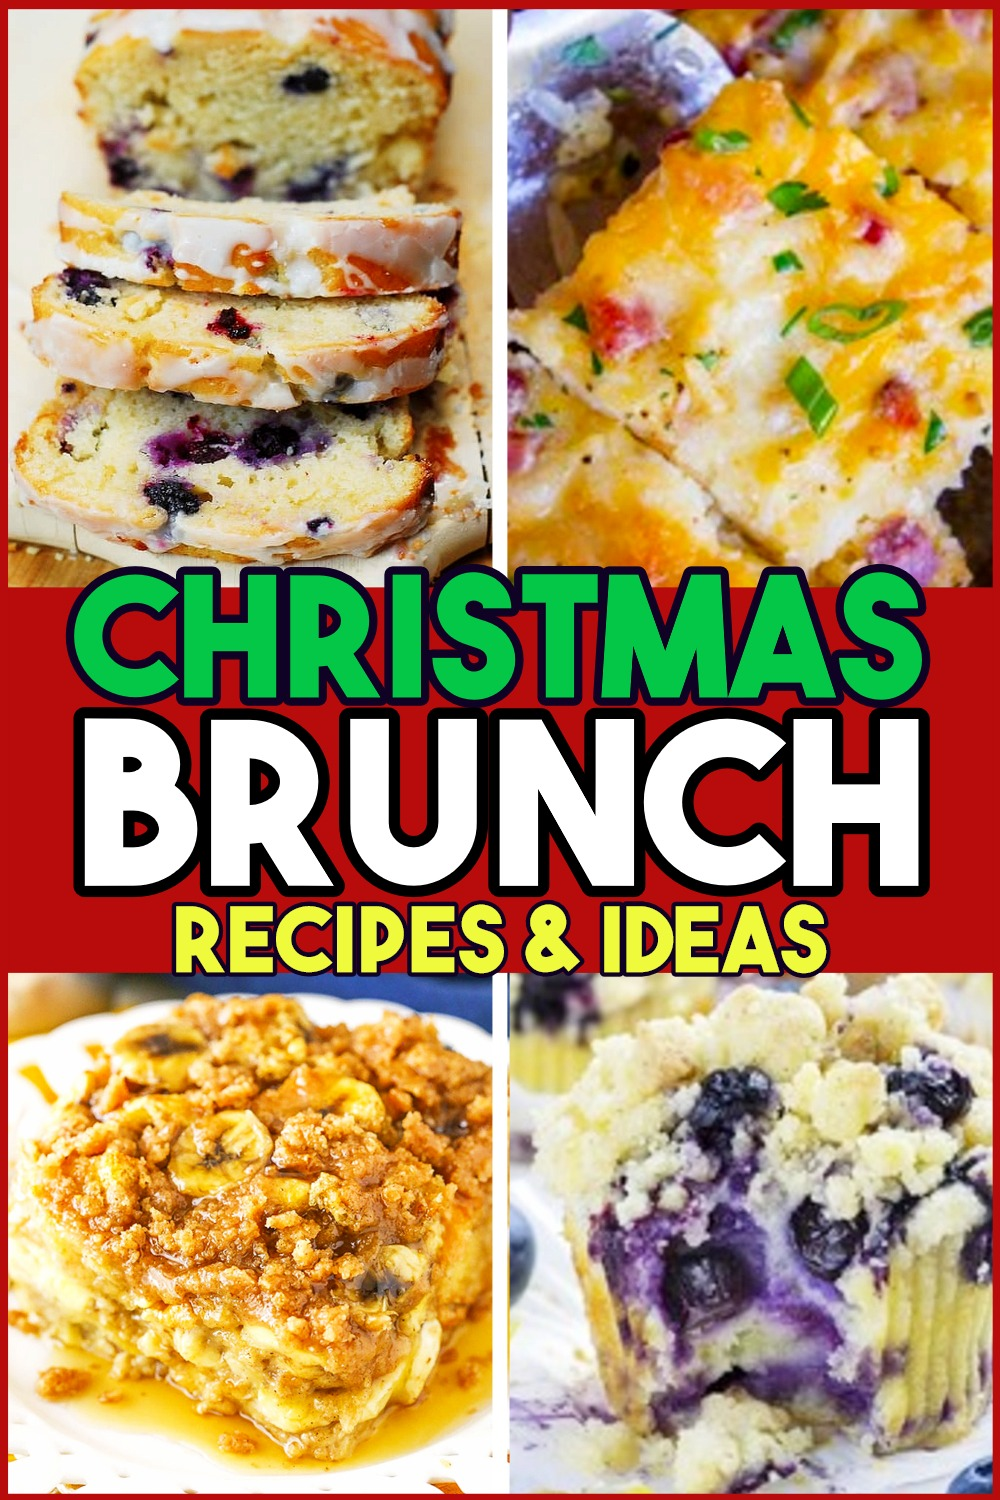 Christmas Brunch Ideas! Make Ahead Breakfast Casseroles and More Easy Recipes for a Budget Christmas Brunch Party - yummy and easy overnight breakfast casserole recipes (can even freeze in the freezer) - breakfast casserole make ahead easy recipes, brunch muffins & more easy breakfast ideas for Christmas morning, holiday brunch party or potluck to enjoy sweet breakfast recipes like desserts for non breakfast eaters and weekend guests